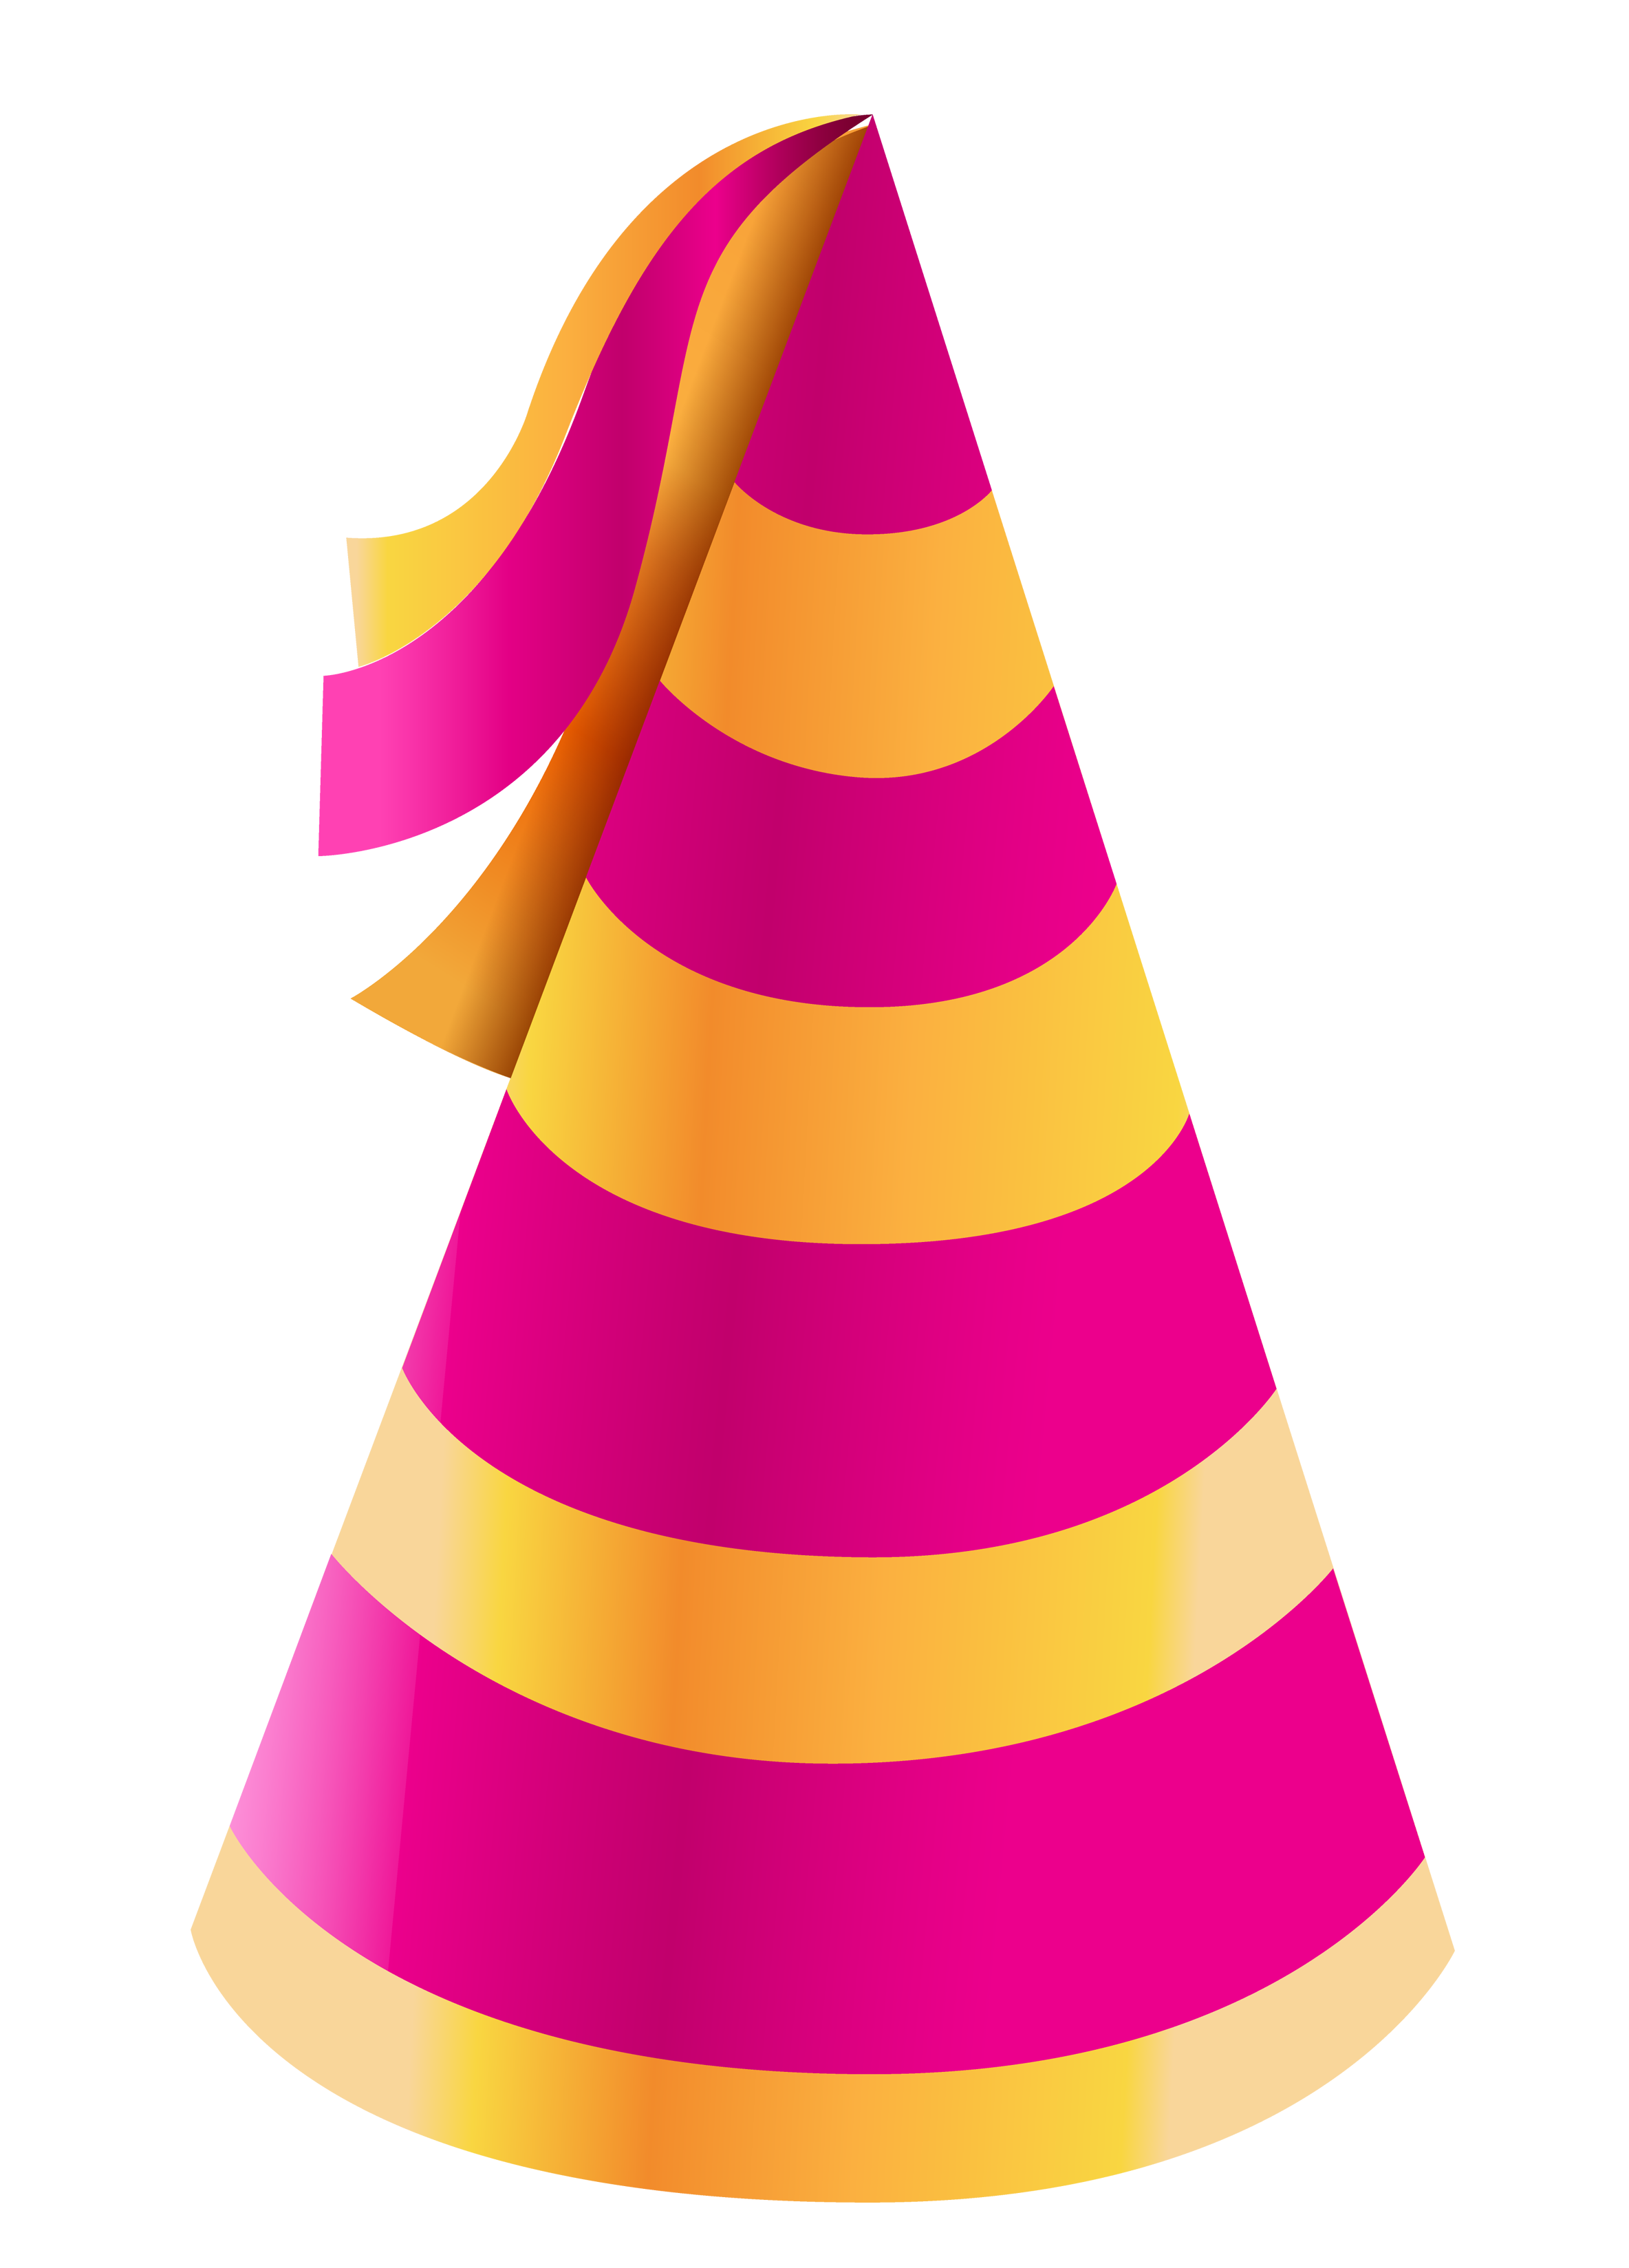 Party clipart icon png royalty free Party clipart icon, Party icon Transparent FREE for download ... png royalty free